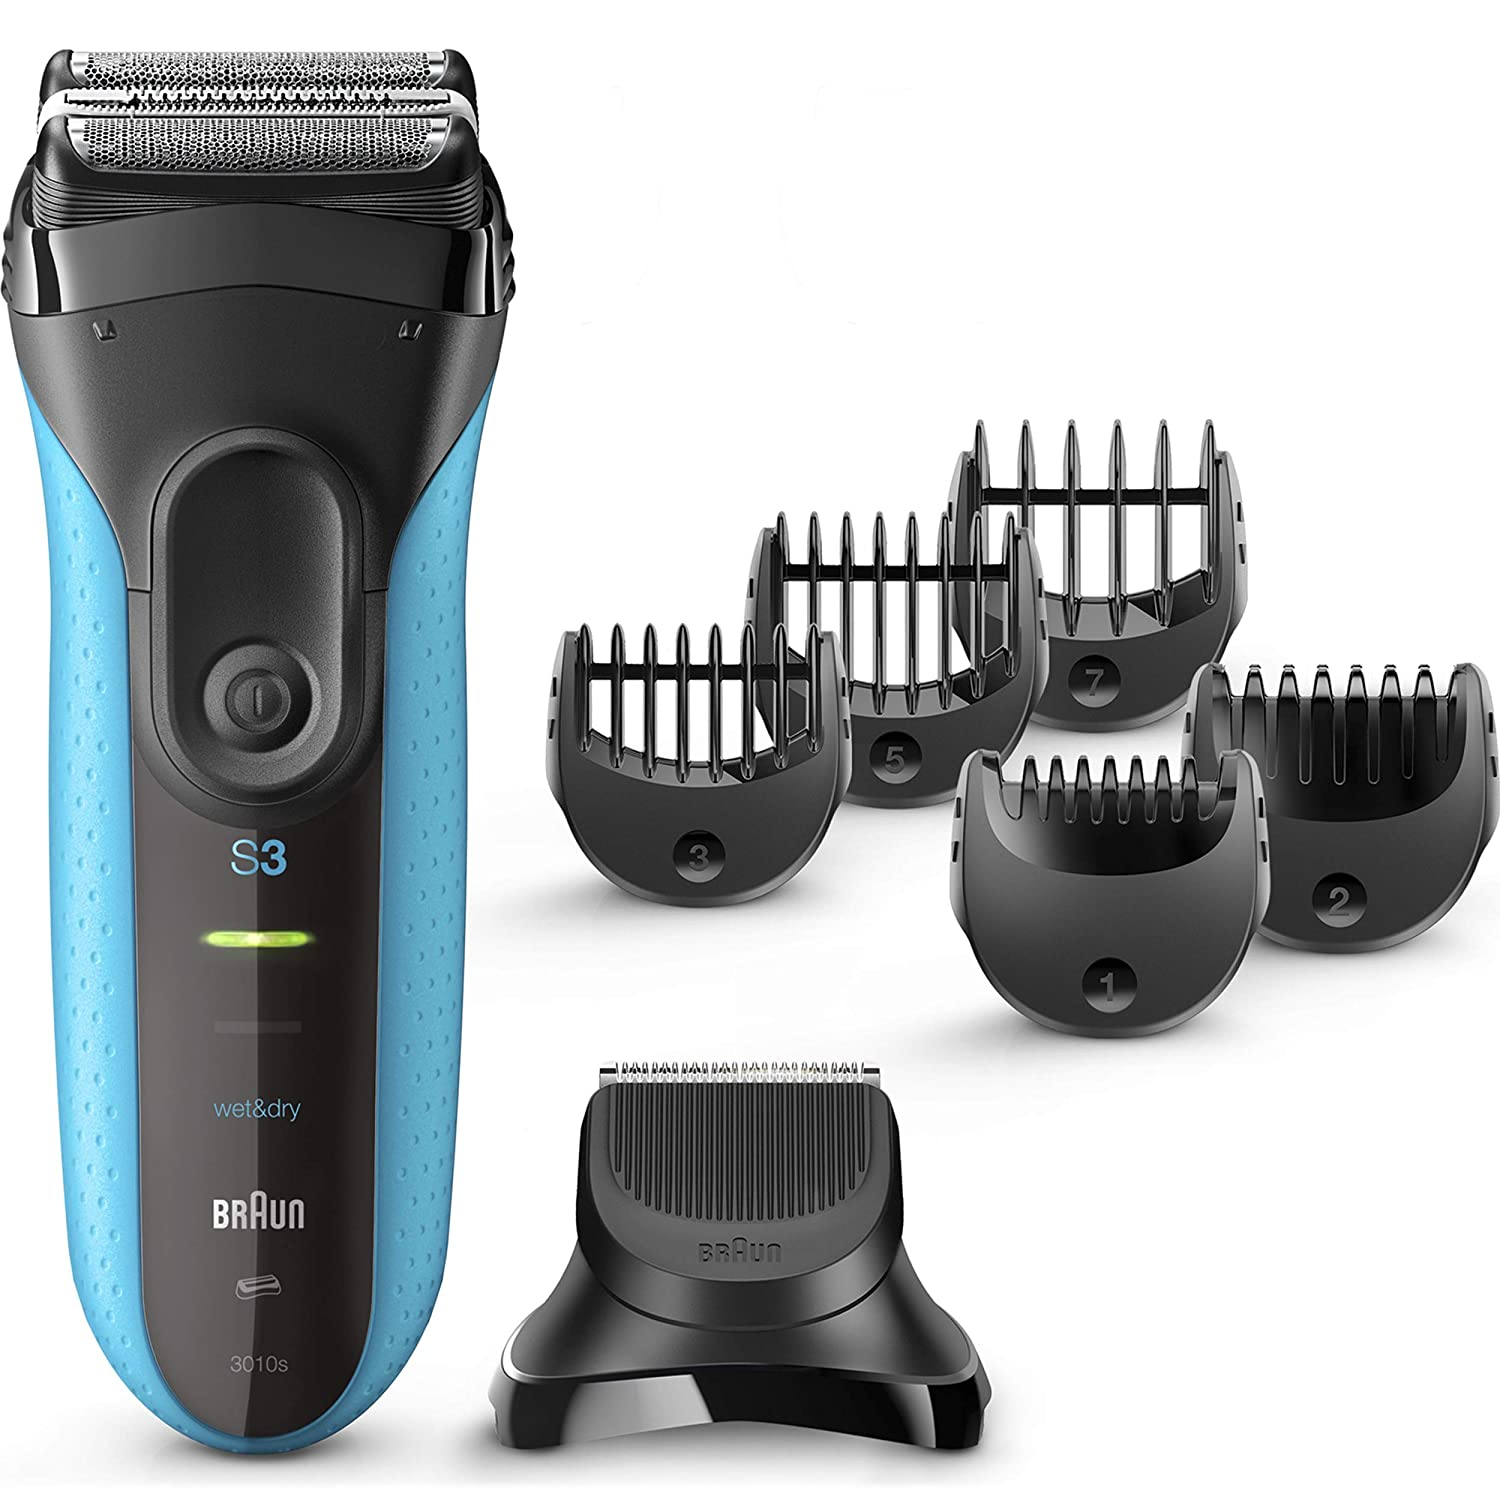 Braun Series 3 Shave Style 3010BT 3-in-1 Electric Razor for Men, Rechargeable and Cordless Electric Shaver, Wet Dry Foil Shaver, Blue, with 5 Combs and Precision Trimmer Head